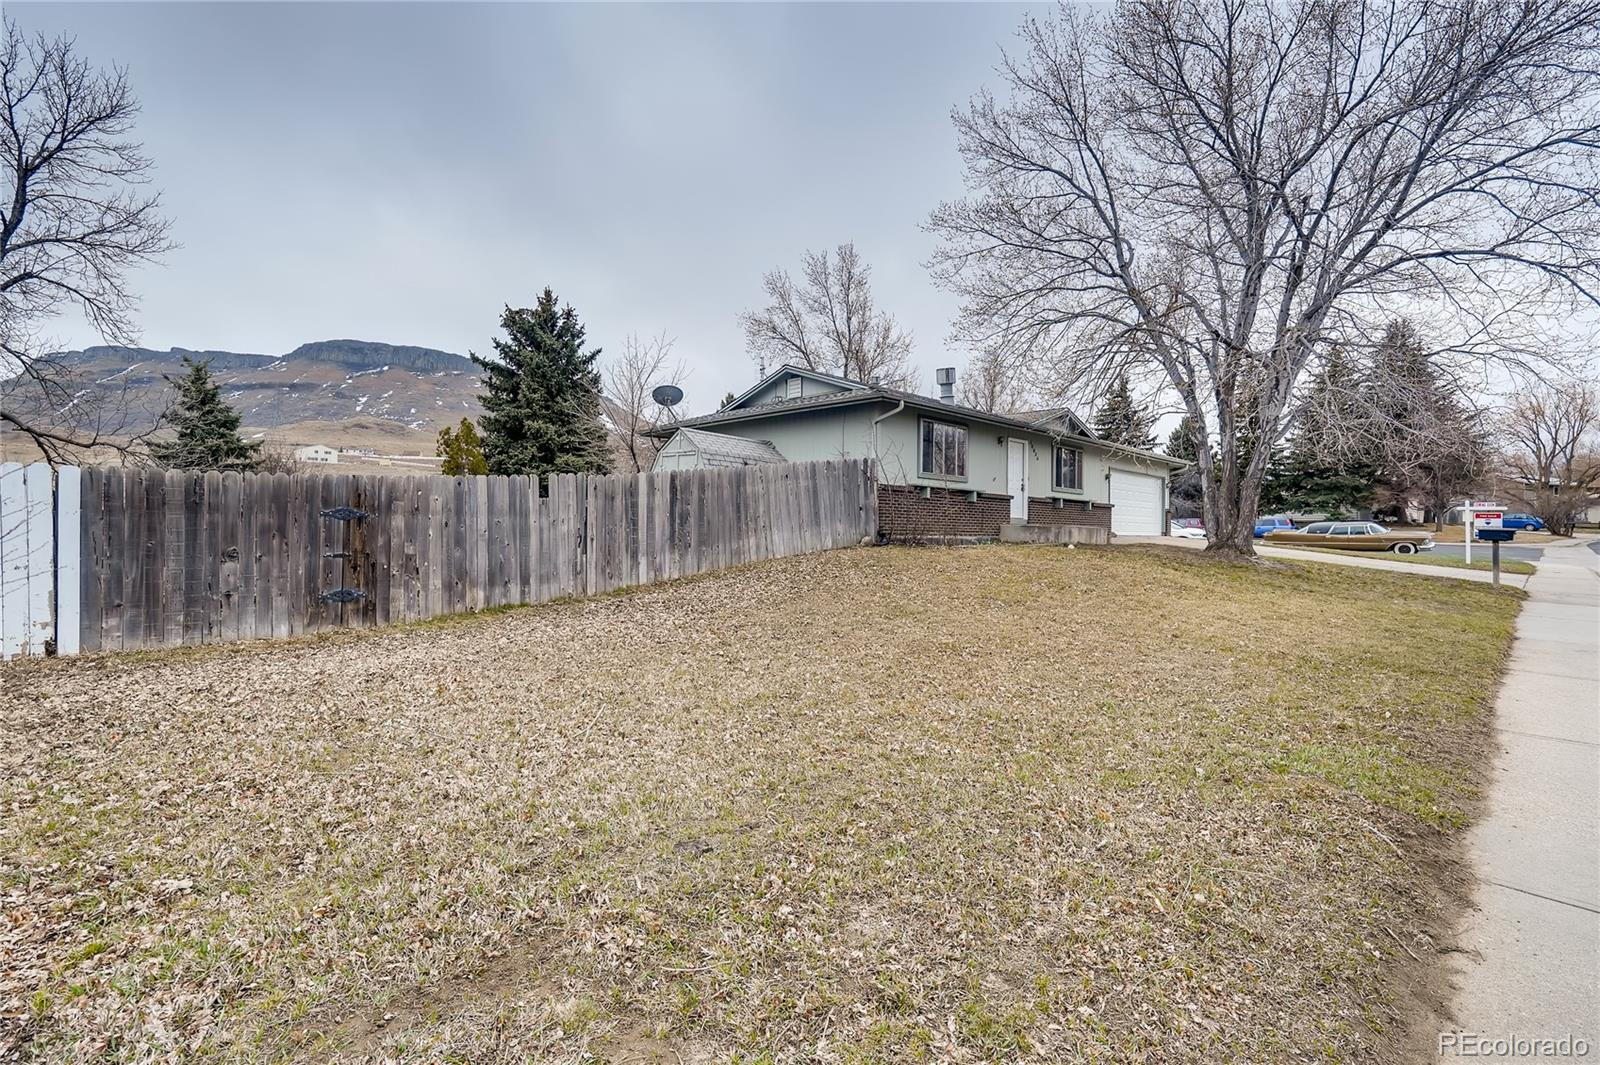 MLS# 9503285 - 2 - 18636 W 59th Drive, Golden, CO 80403